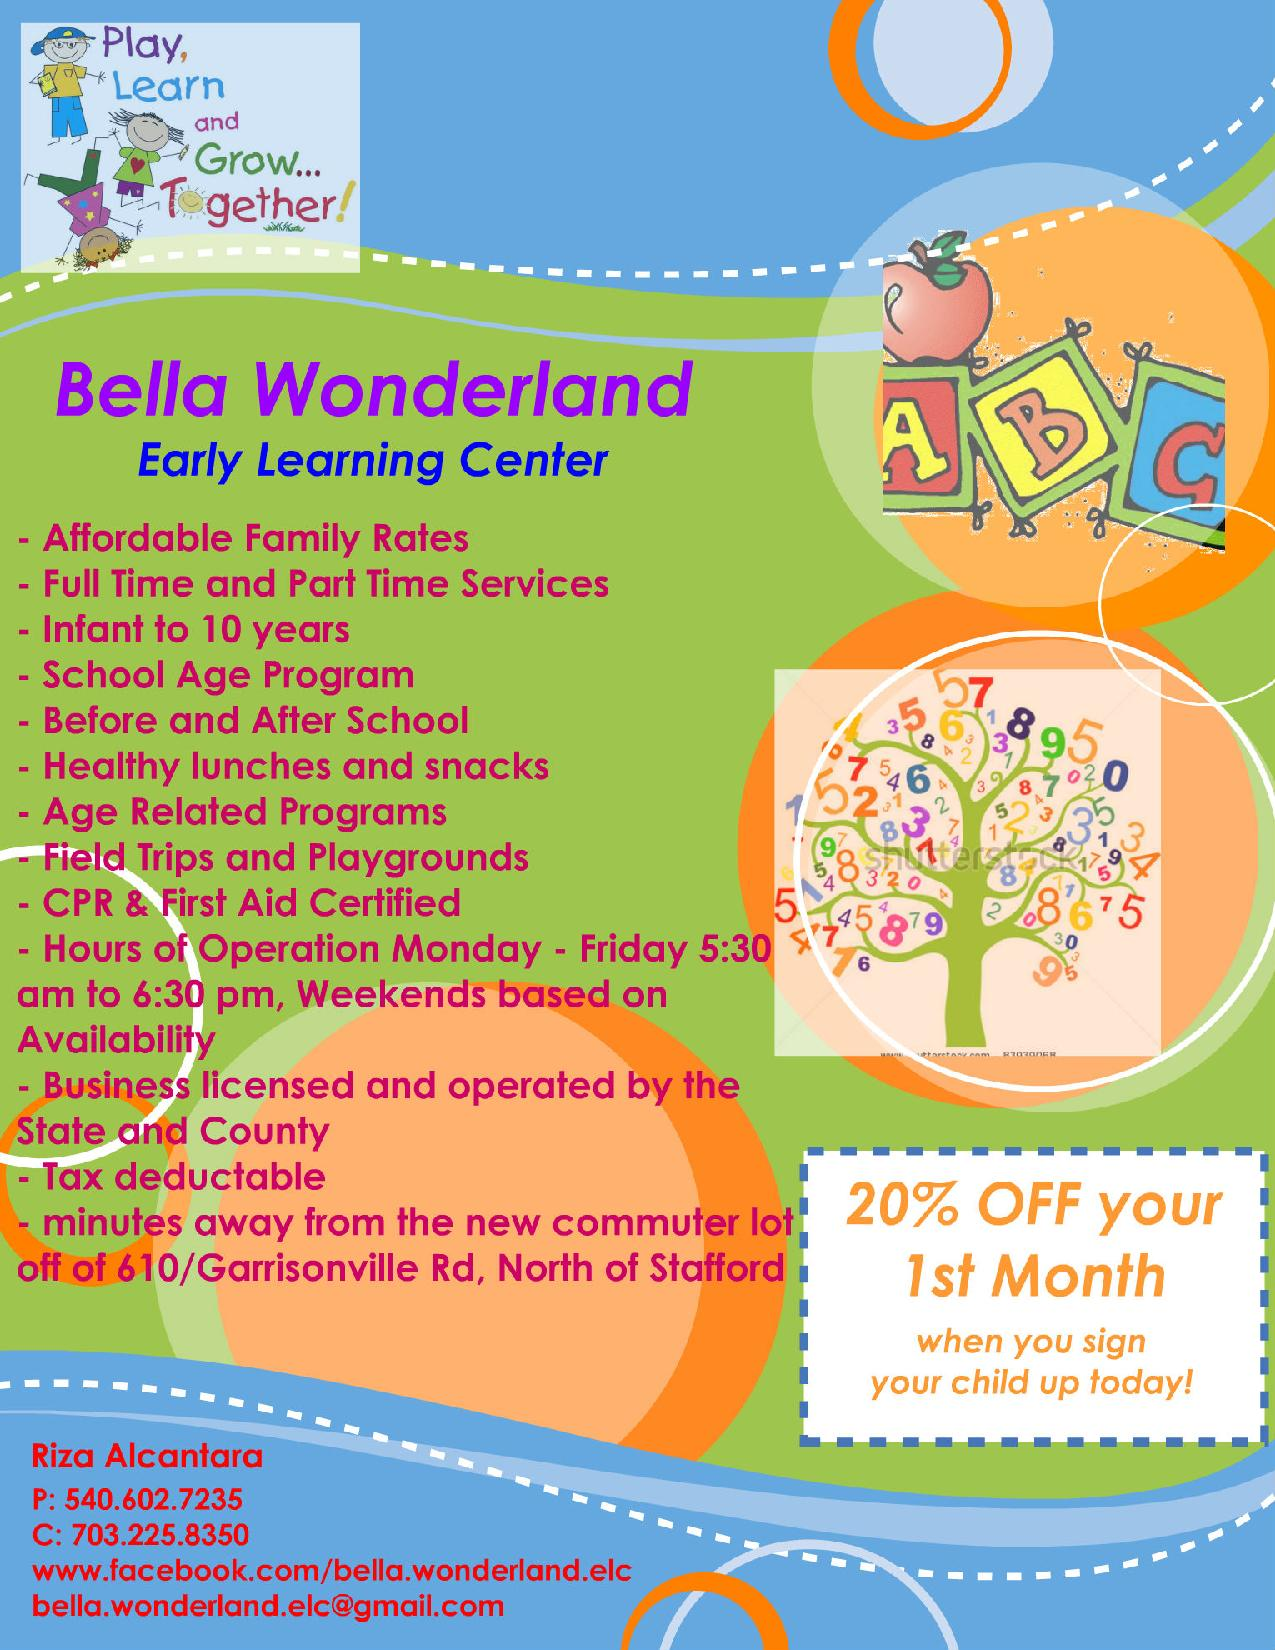 bella wonderland early learning center stafford va home daycare